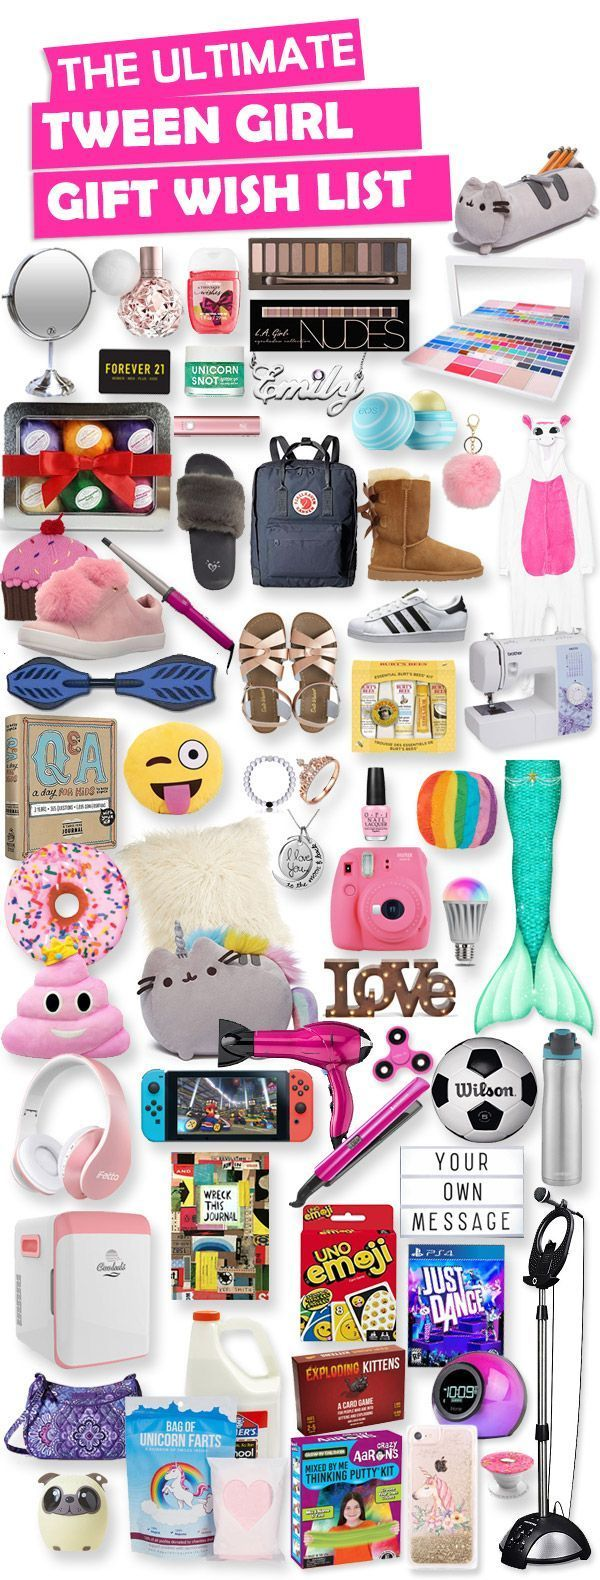 Things To Ask For For Christmas Teenage Girl: 11 Best Gifts For Teen Girls Images On Pinterest